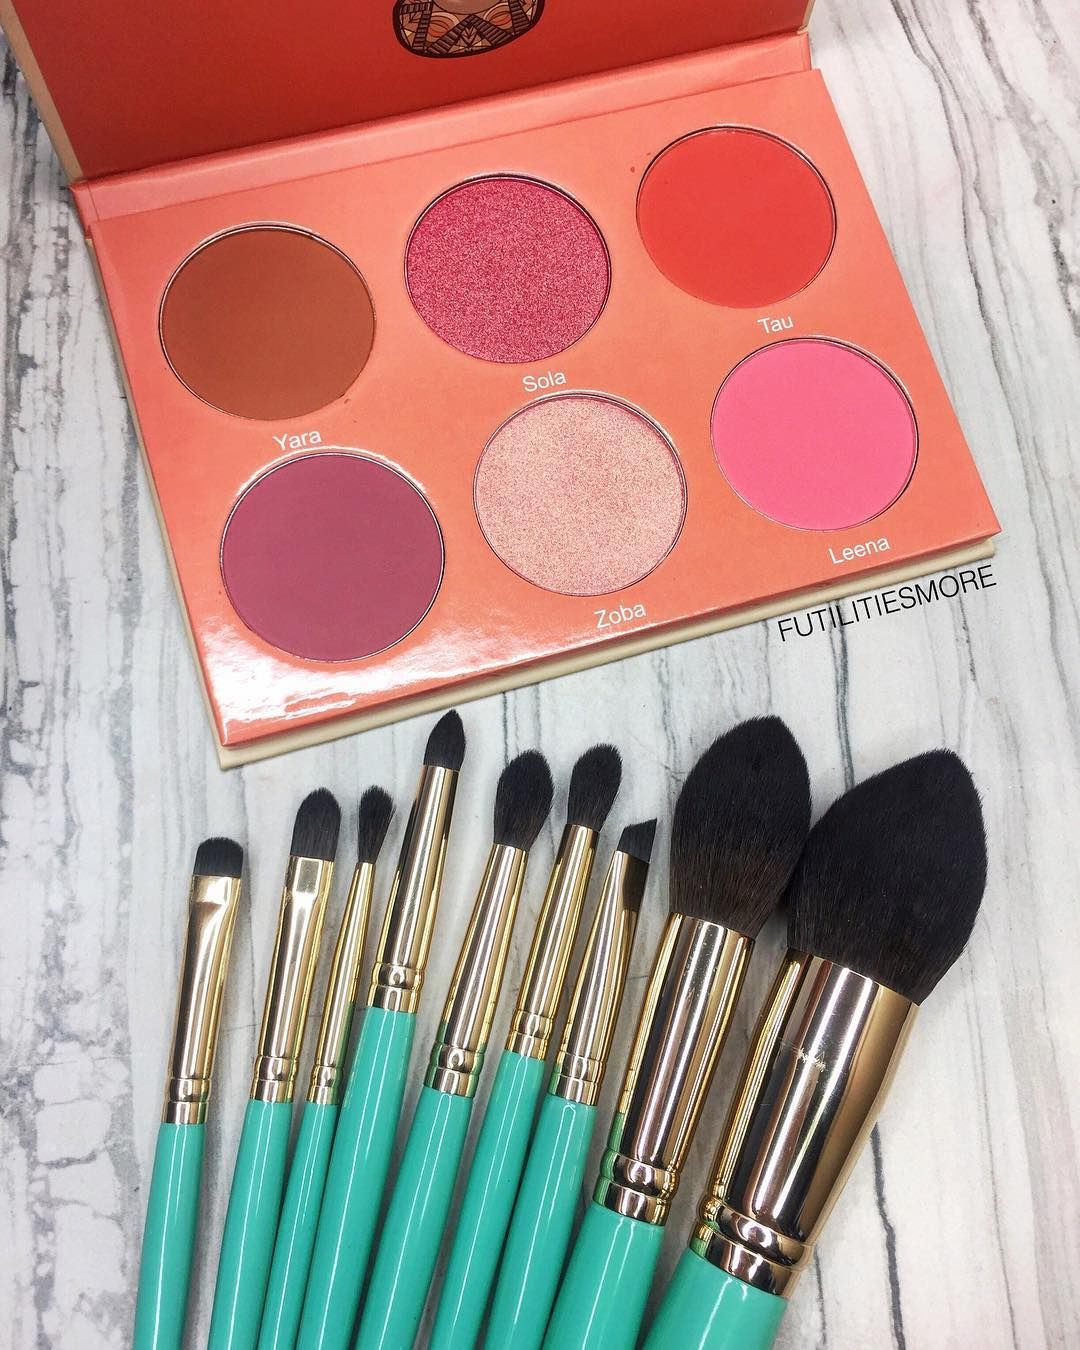 This juviasplace mint brush set is BACK IN STOCK. How